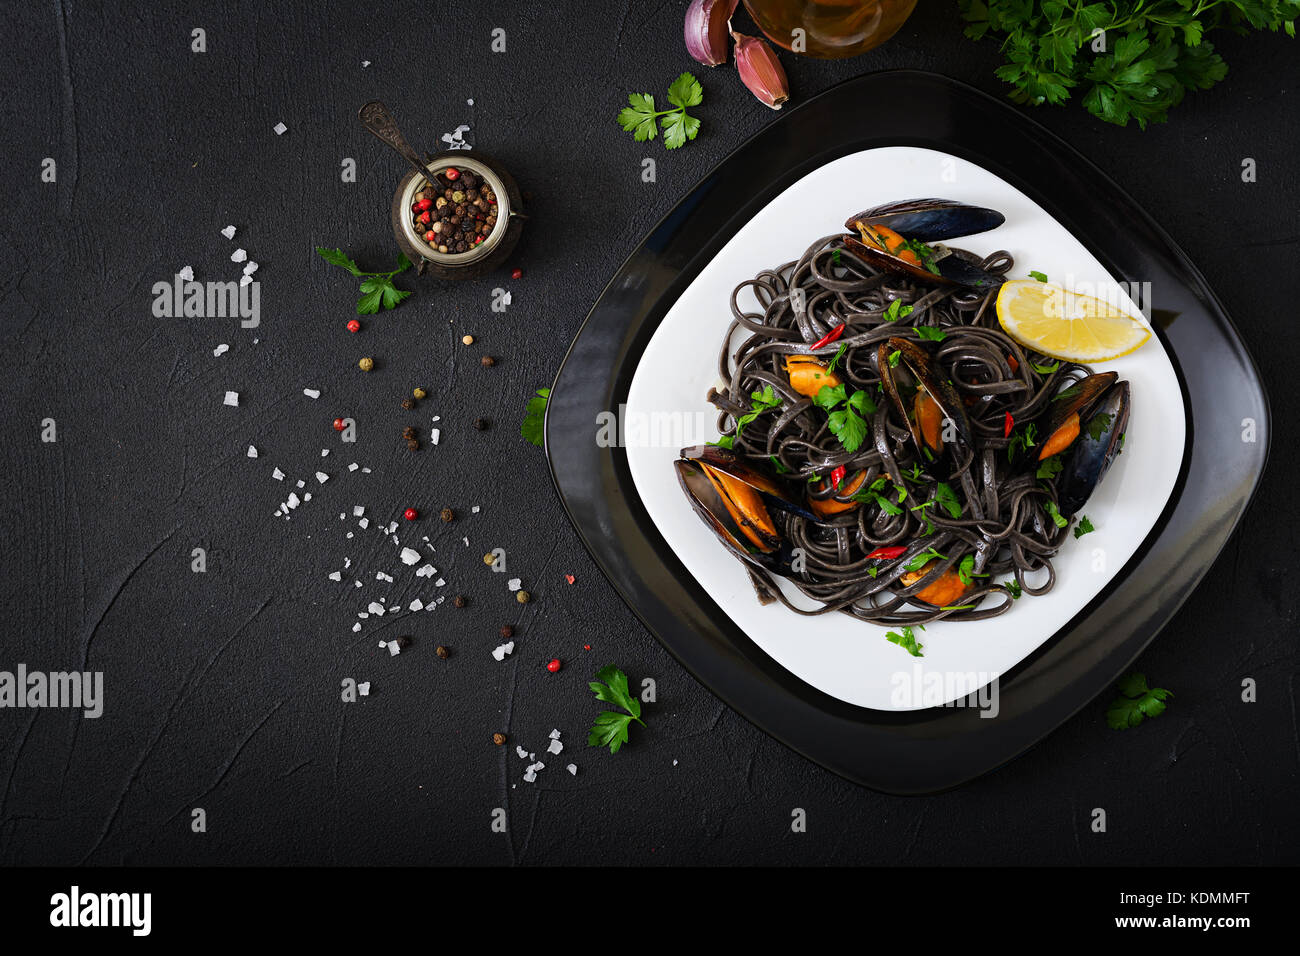 Black spaghetti. Black seafood pasta with mussels over black background. Mediterranean delicacy food. Flat lay. - Stock Image